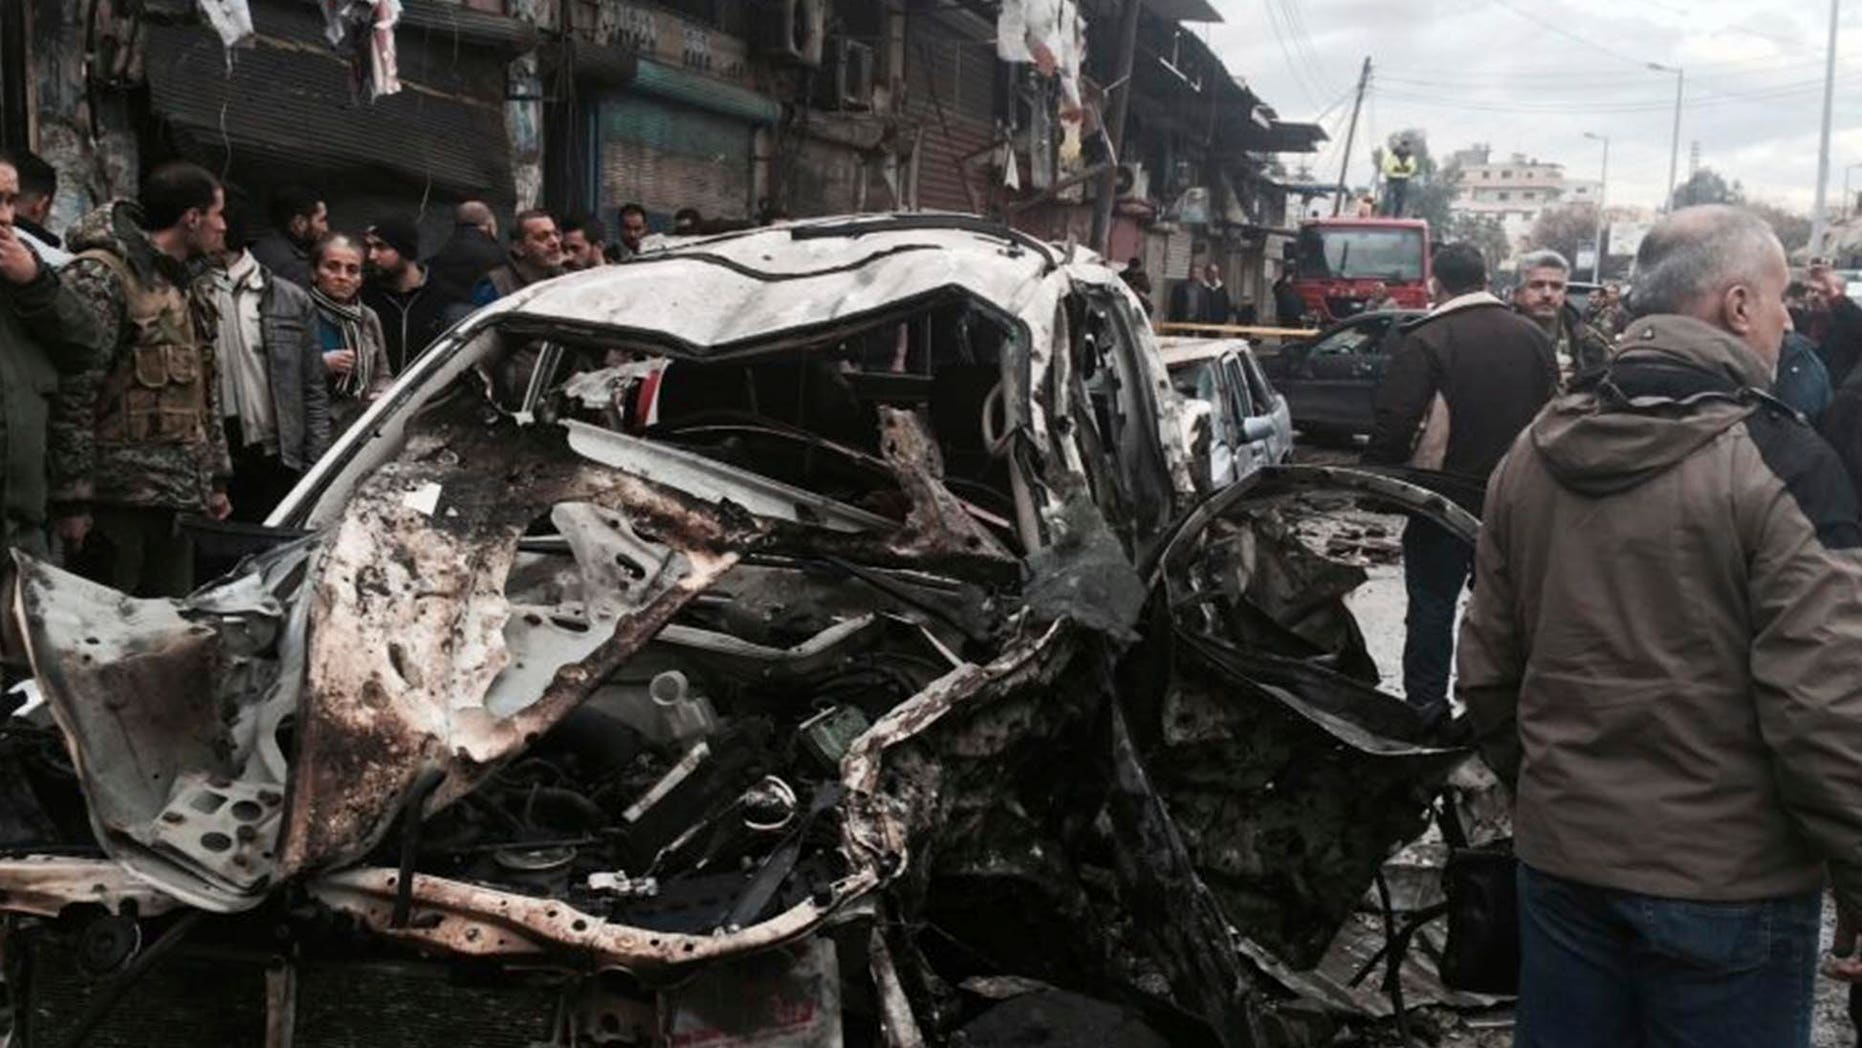 In this photo released by the Syrian official news agency SANA, Syrian citizens gather next to damaged cars at the scene where explosion hit a commercial street, in the costal town of Jableh, Syria, Thursday, Jan. 5, 2017. A large explosion hit a Syrian government-held coastal town on Thursday, killing and wounding several people, according to Syria's state TV an attack that undermined a nearly week-old and already shaky Russia- and Turkey-brokered cease-fire. (SANA via AP)